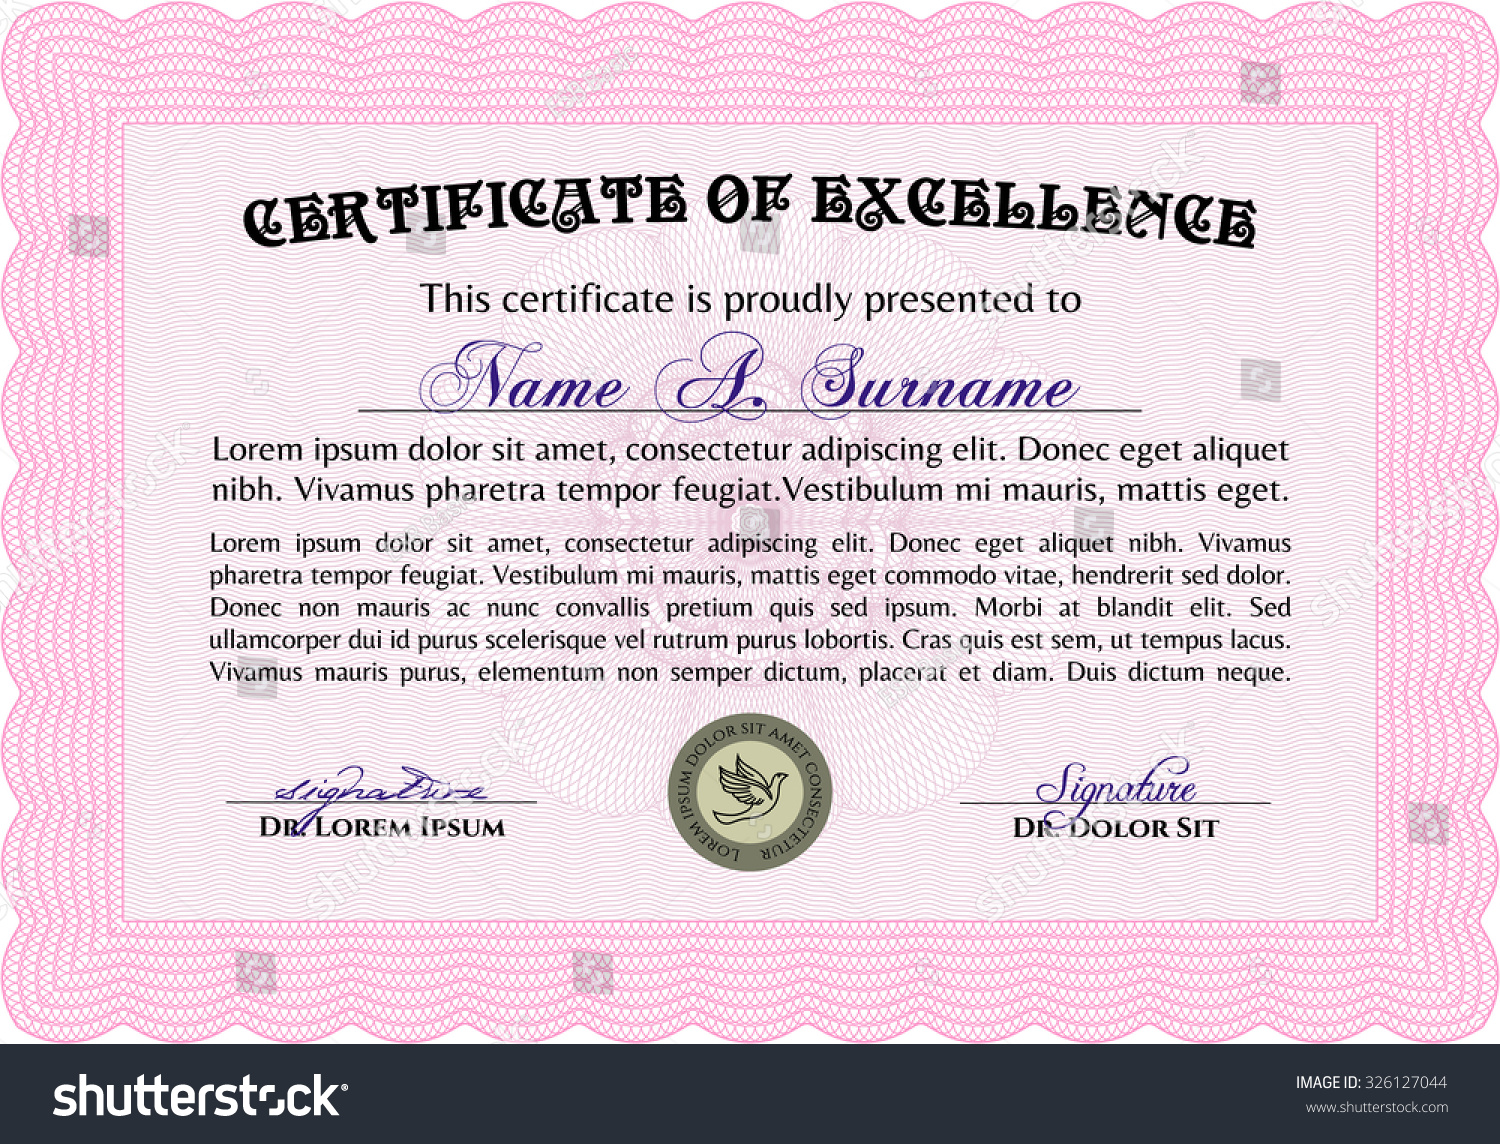 Diploma template certificate template vector pattern stock vector diploma template or certificate template vector pattern that is used in currency and diplomas yadclub Image collections